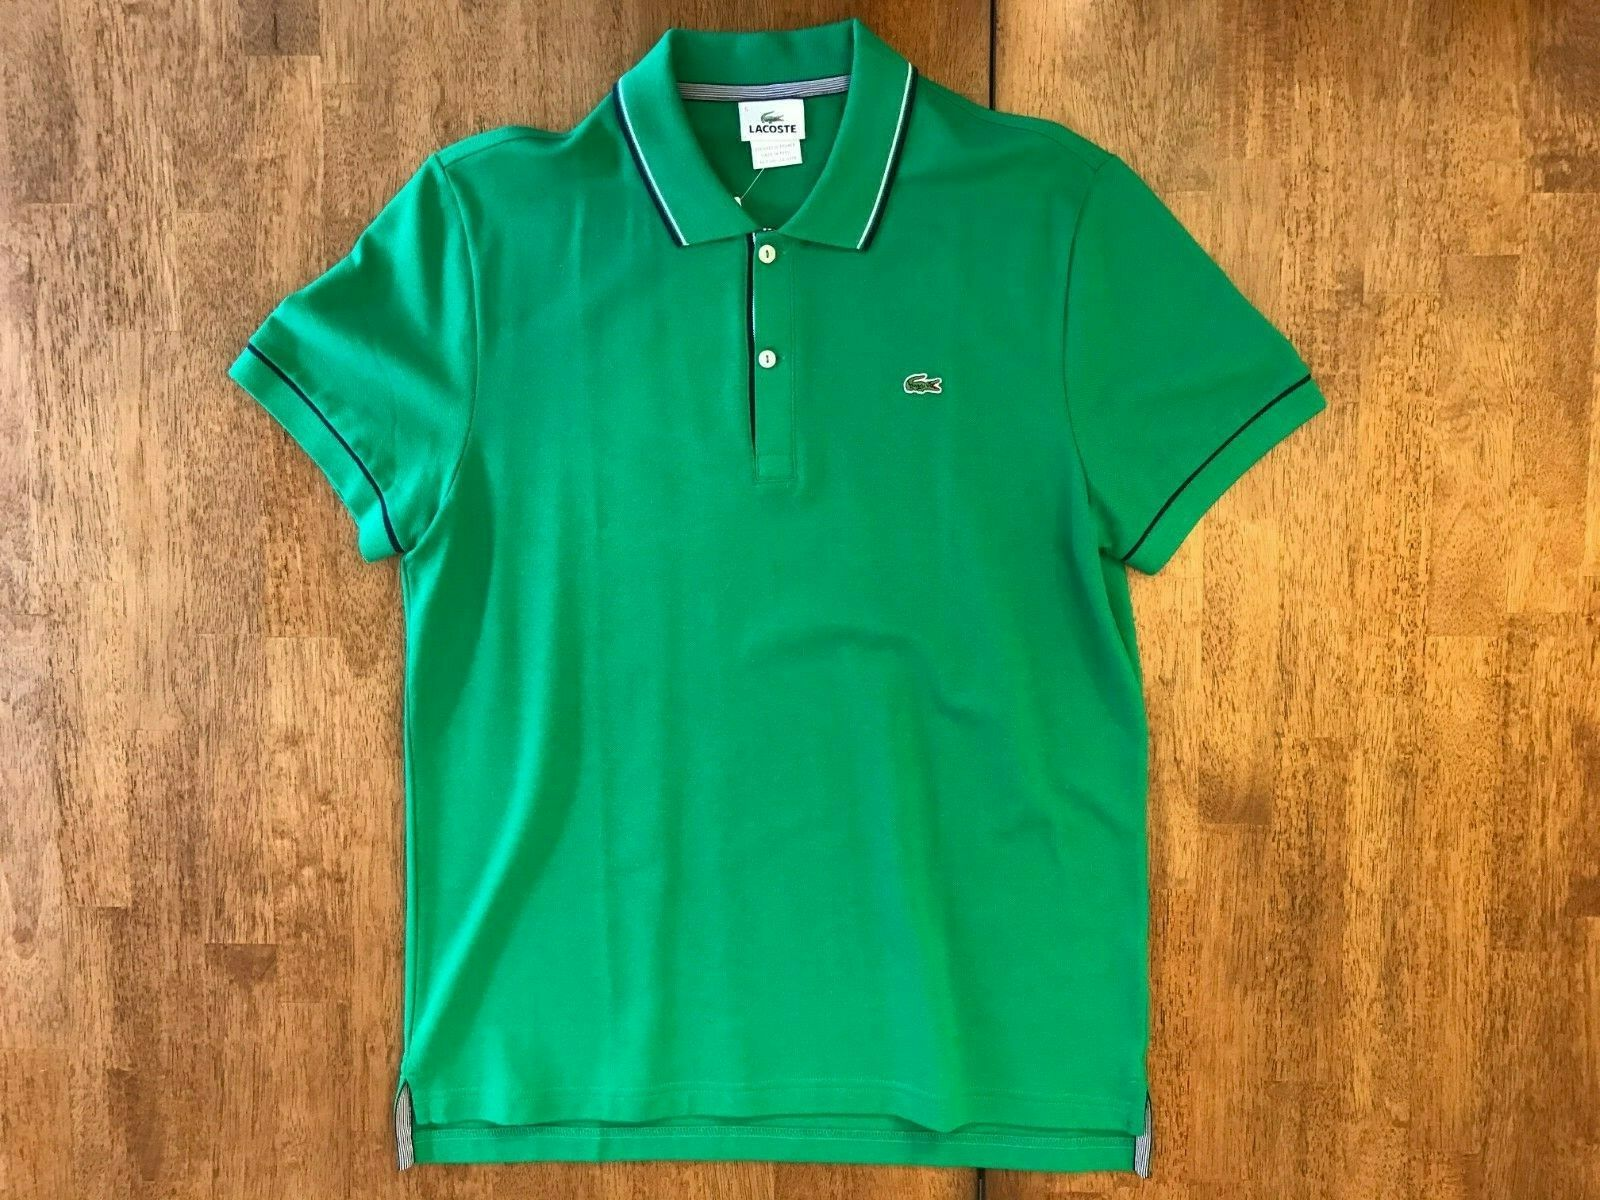 Lacoste Chlgoldphyll Green Twin Tipped Polo Shirt White Navy Medium M 5